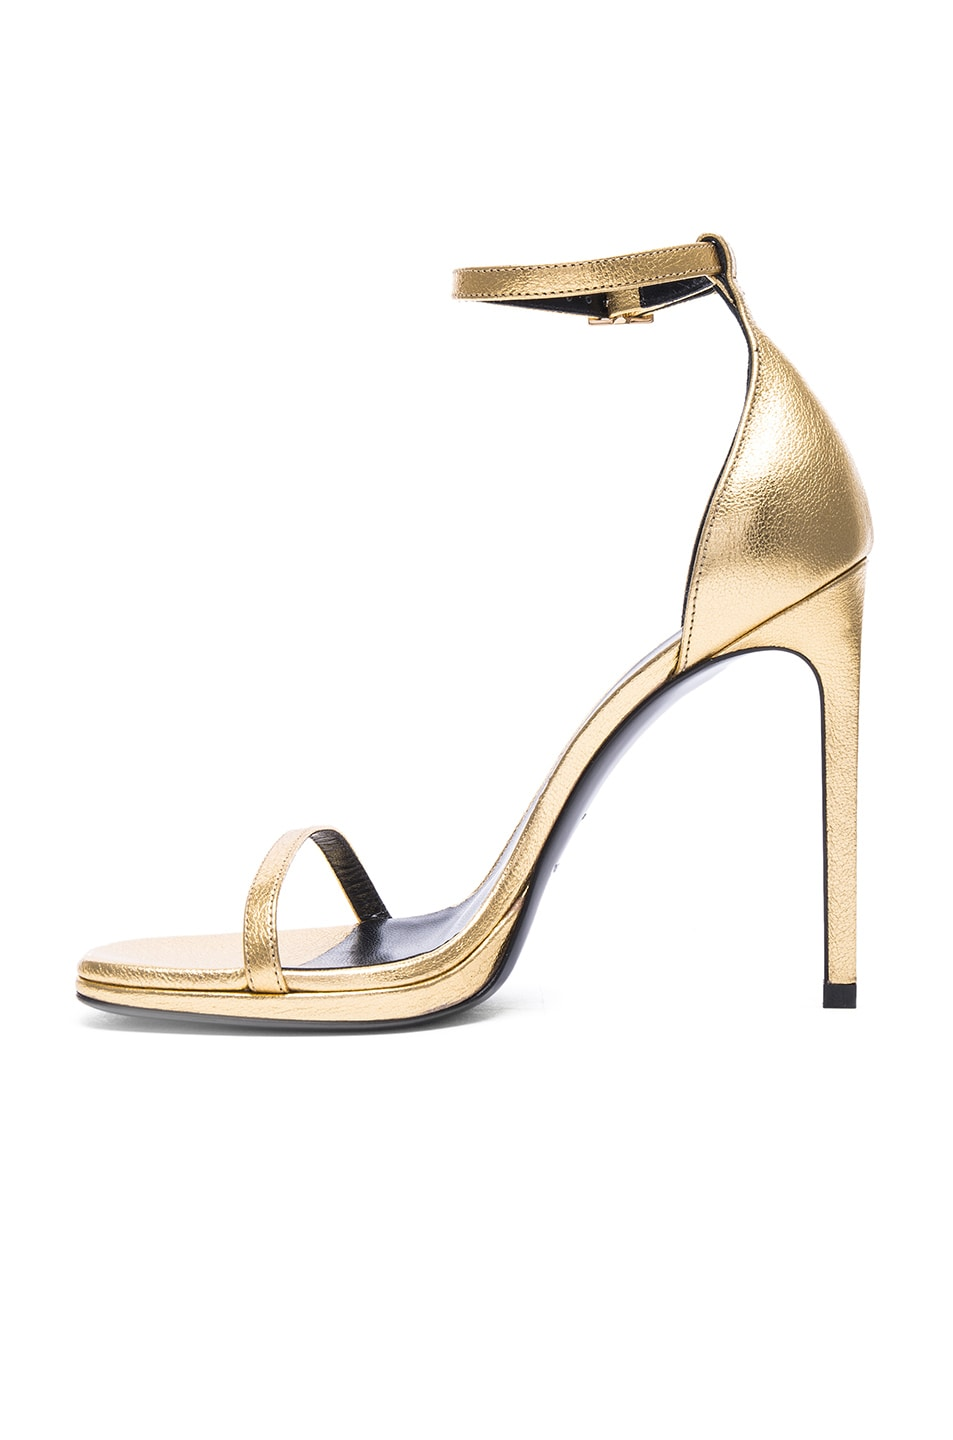 Image 5 of Saint Laurent Metallic Leather Jane Sandals in Gold